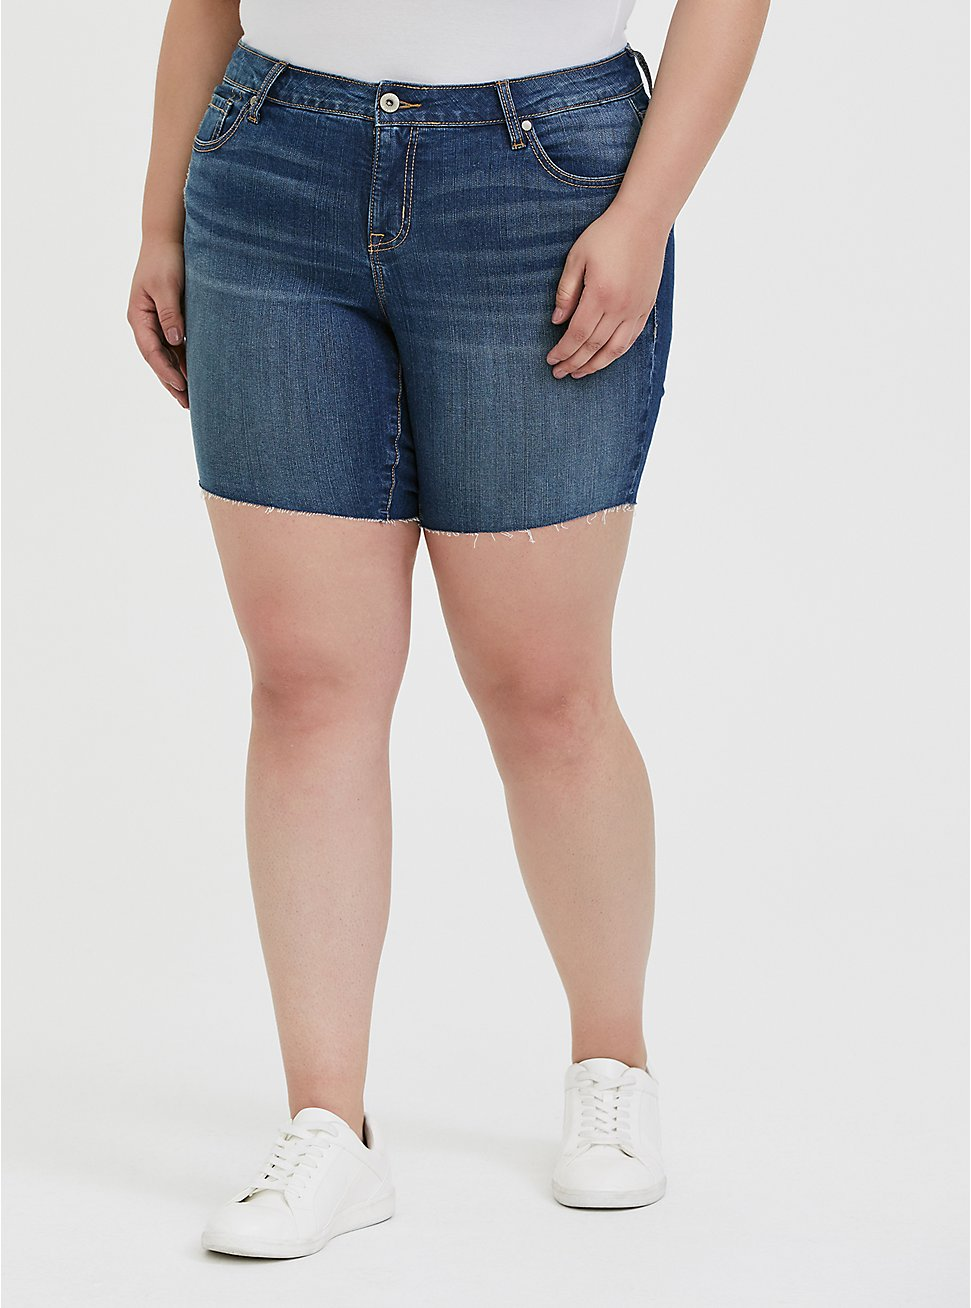 Mid Rise Bermuda Short - Vintage Stretch Dark Wash, BOONDOCKS, hi-res